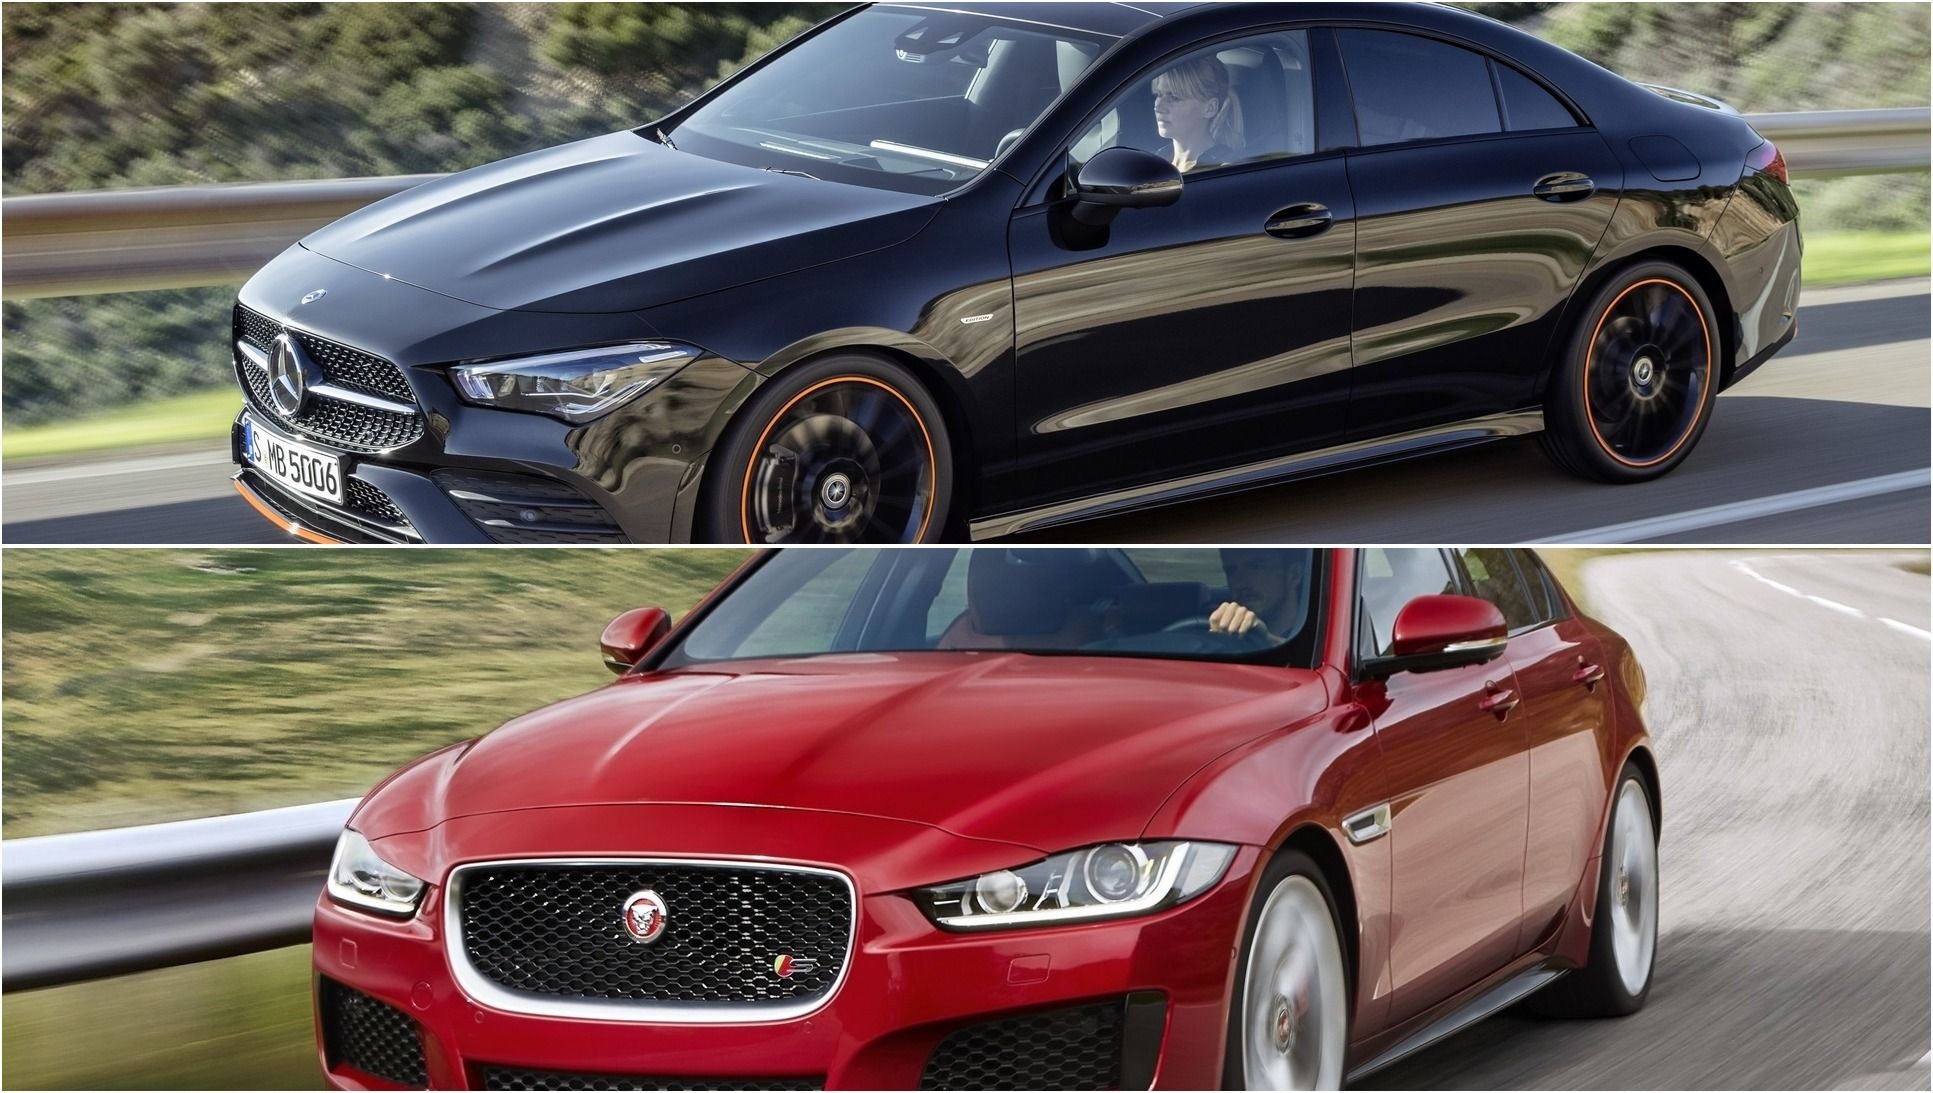 2020 Mercedes Cla Vs 2019 Jaguar Xe Cars Jaguar Xe Jaguar